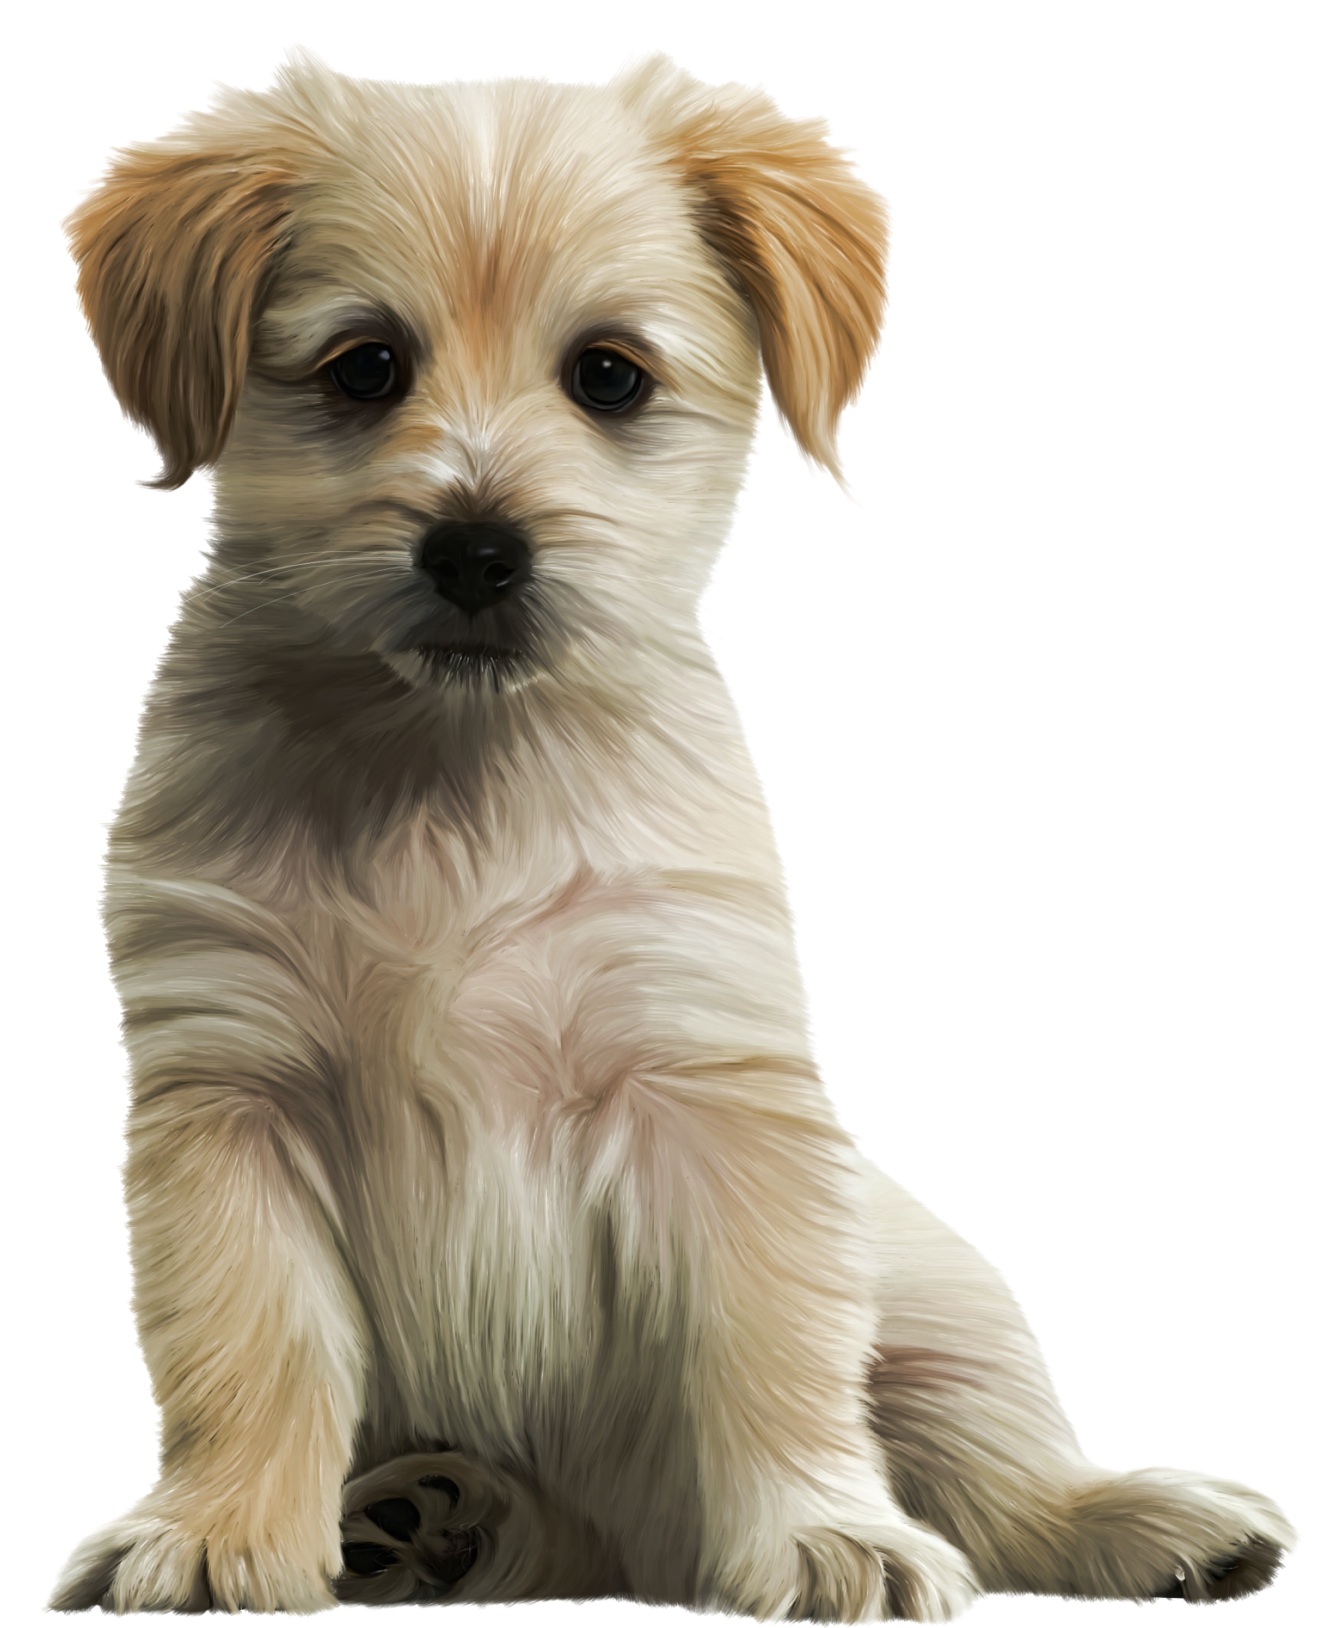 Cute clipart image gallery. Puppy png vector free stock